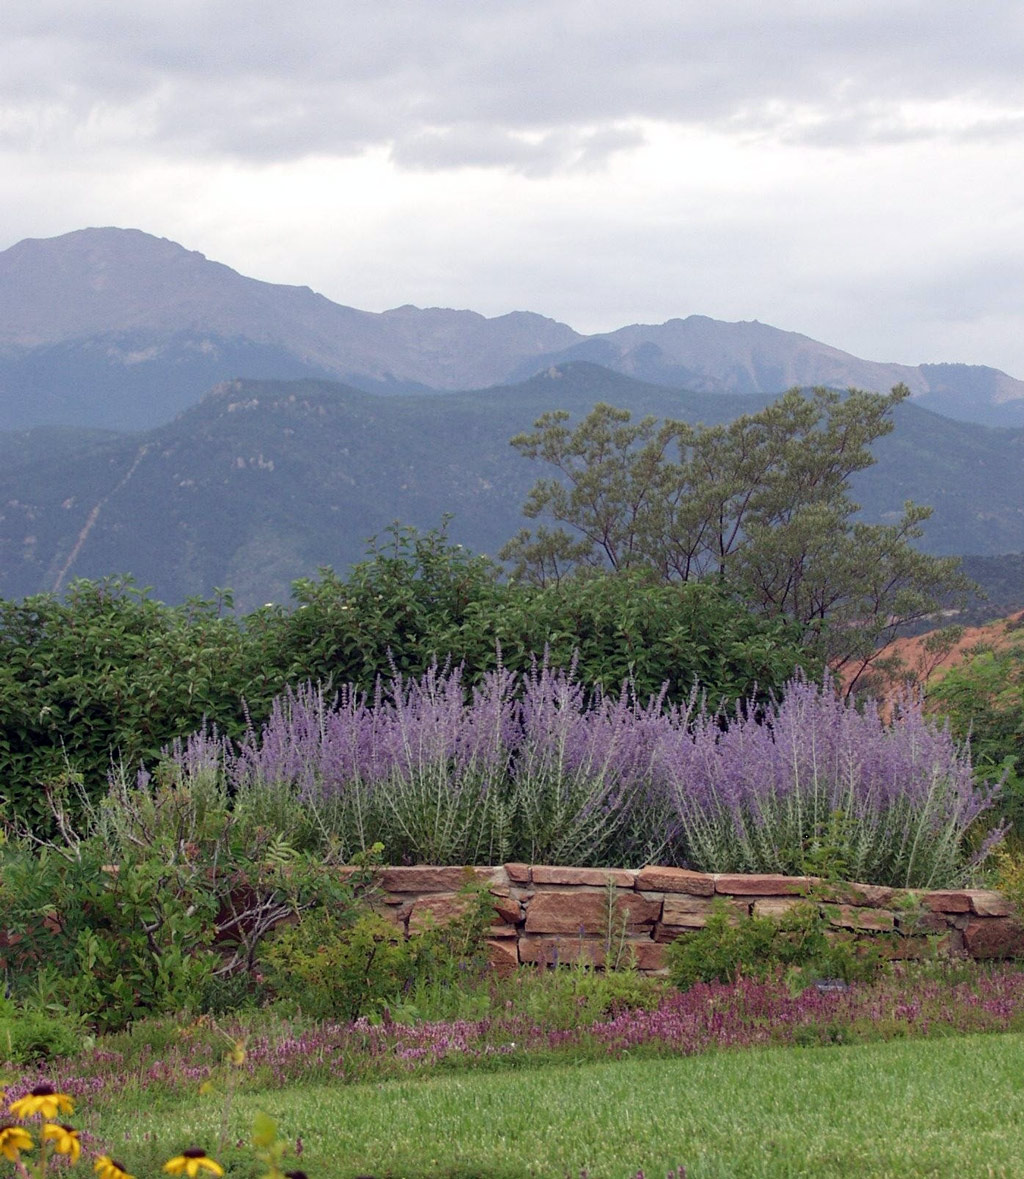 Xeriscape Demonstration Garden in Colorado Springs | GardenVisit ...